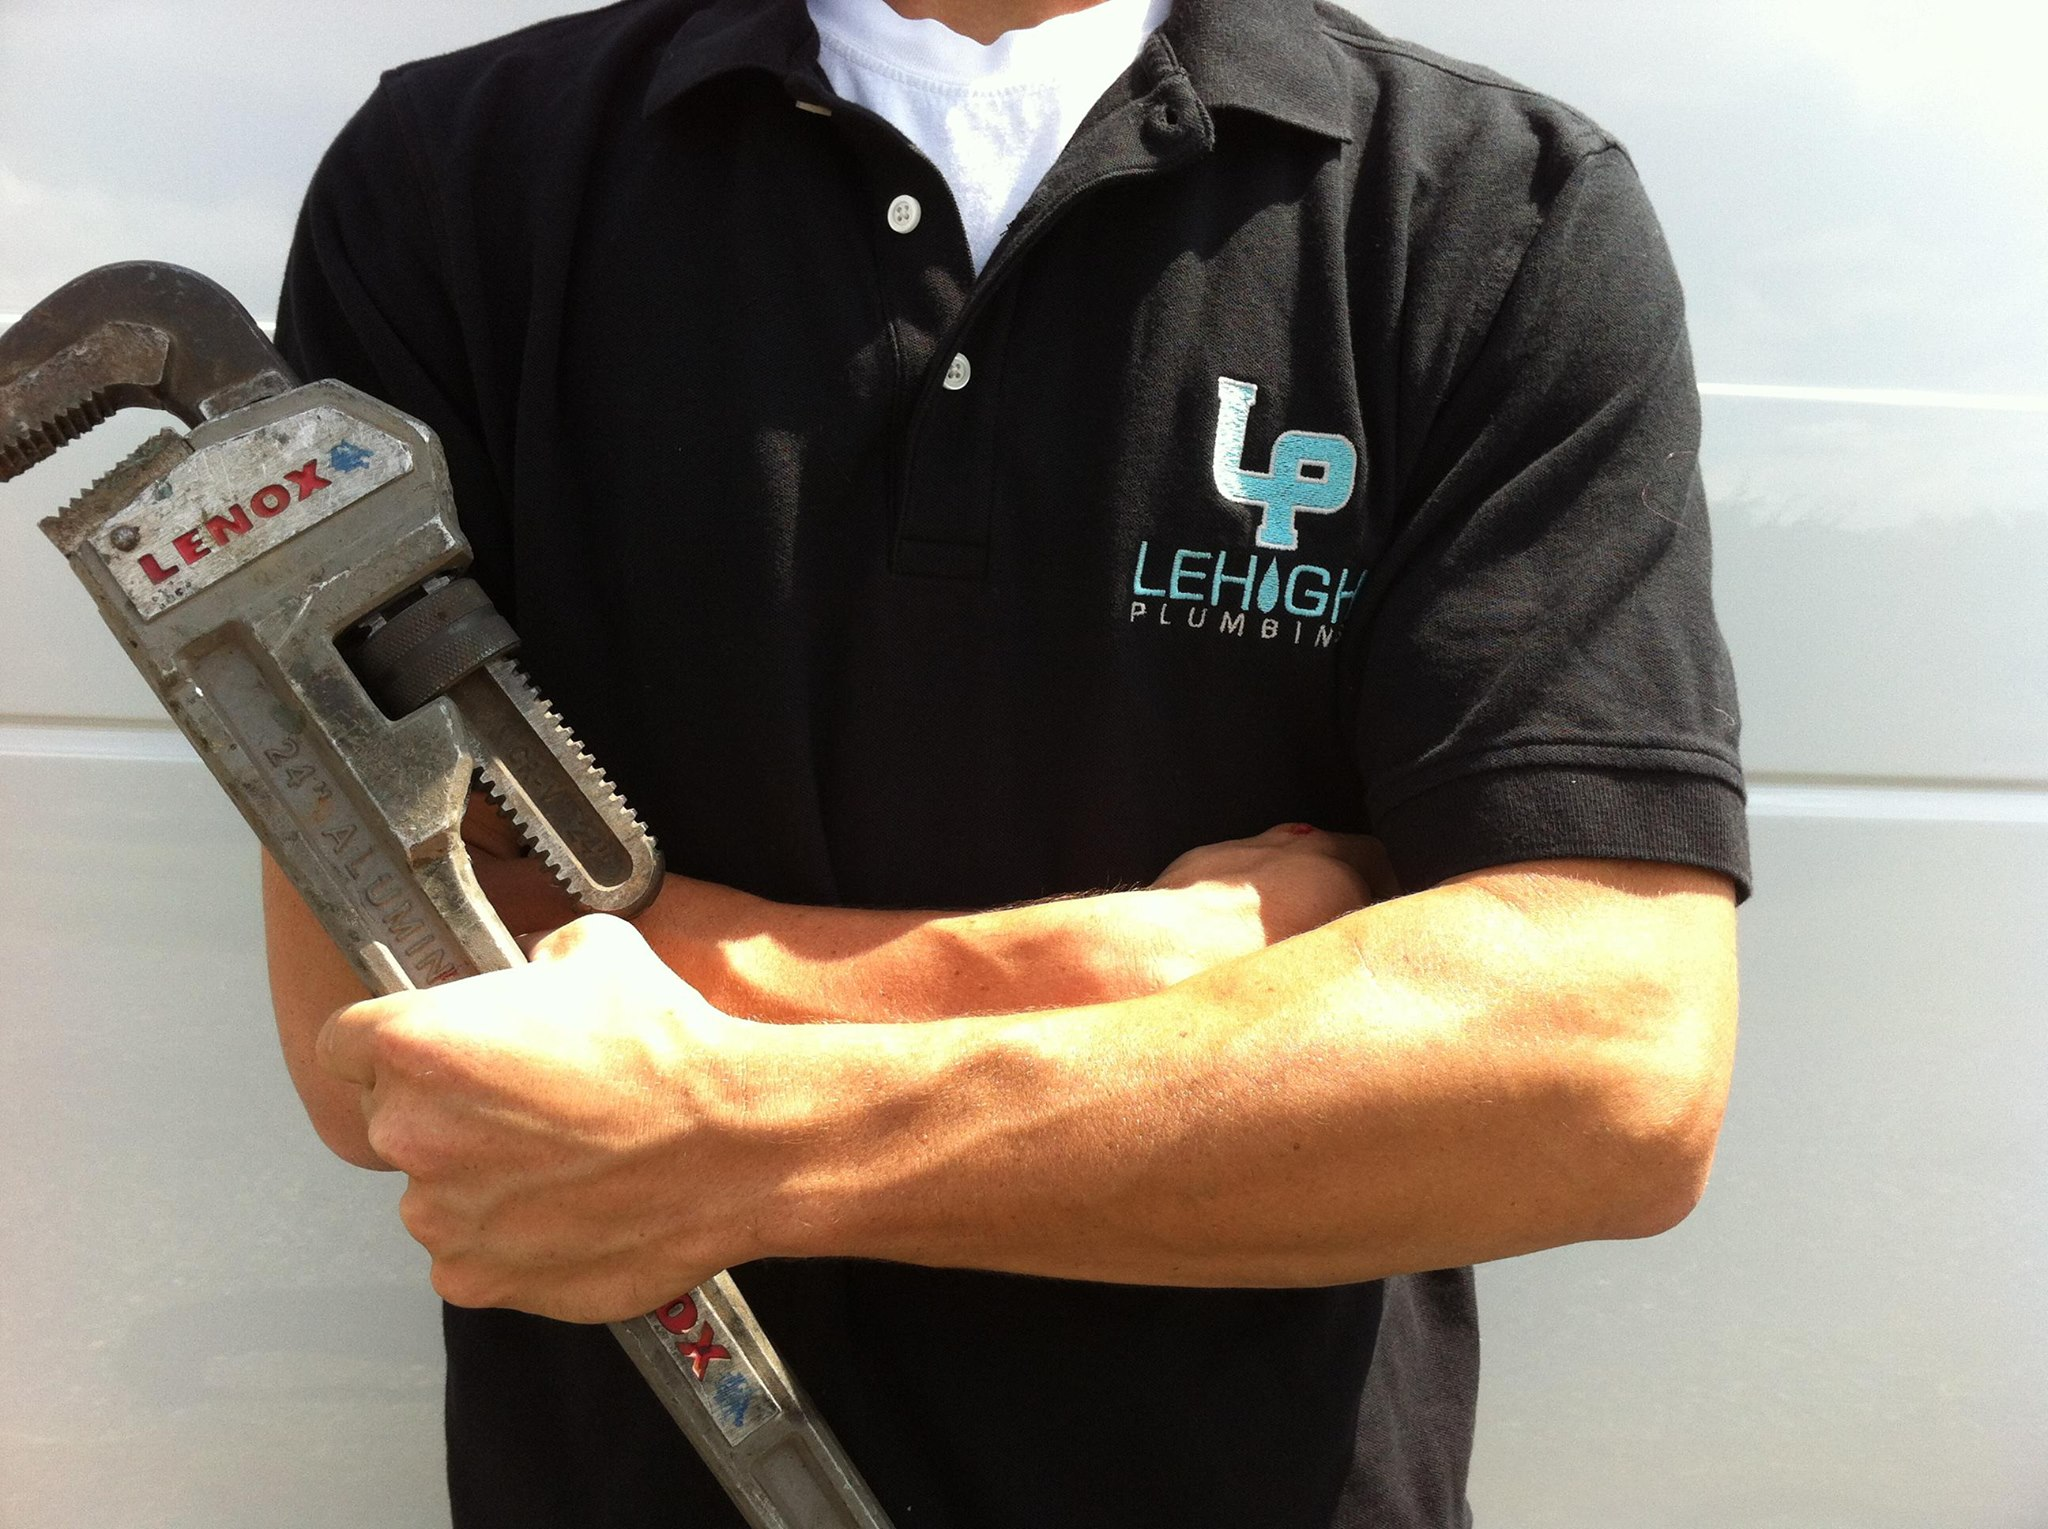 A team member from Lehigh Plumbing